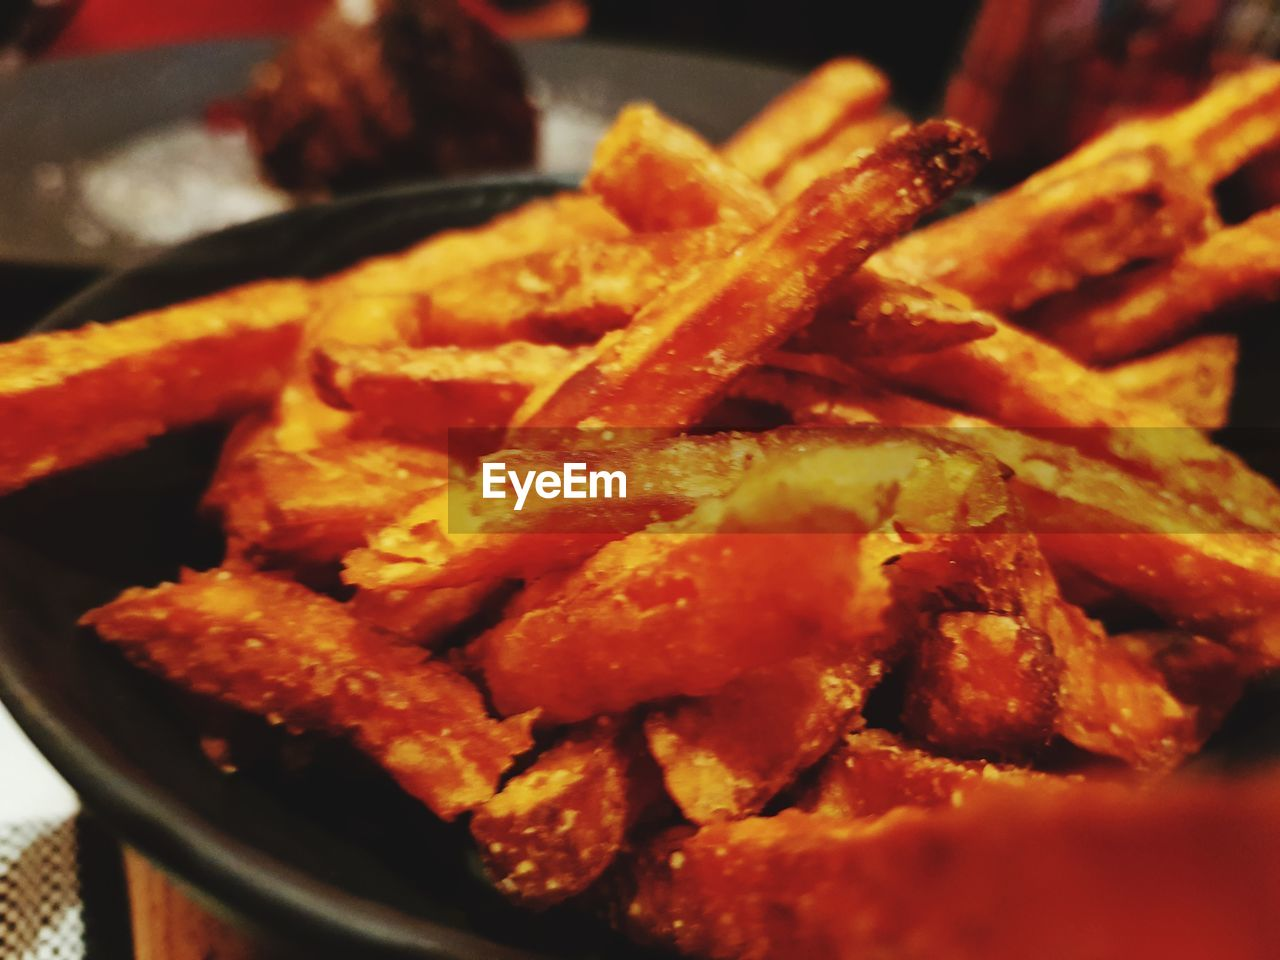 food, food and drink, ready-to-eat, close-up, fried, freshness, prepared potato, potato, unhealthy eating, french fries, still life, fast food, indoors, no people, deep fried, selective focus, snack, serving size, indulgence, meat, temptation, fast food french fries, french food